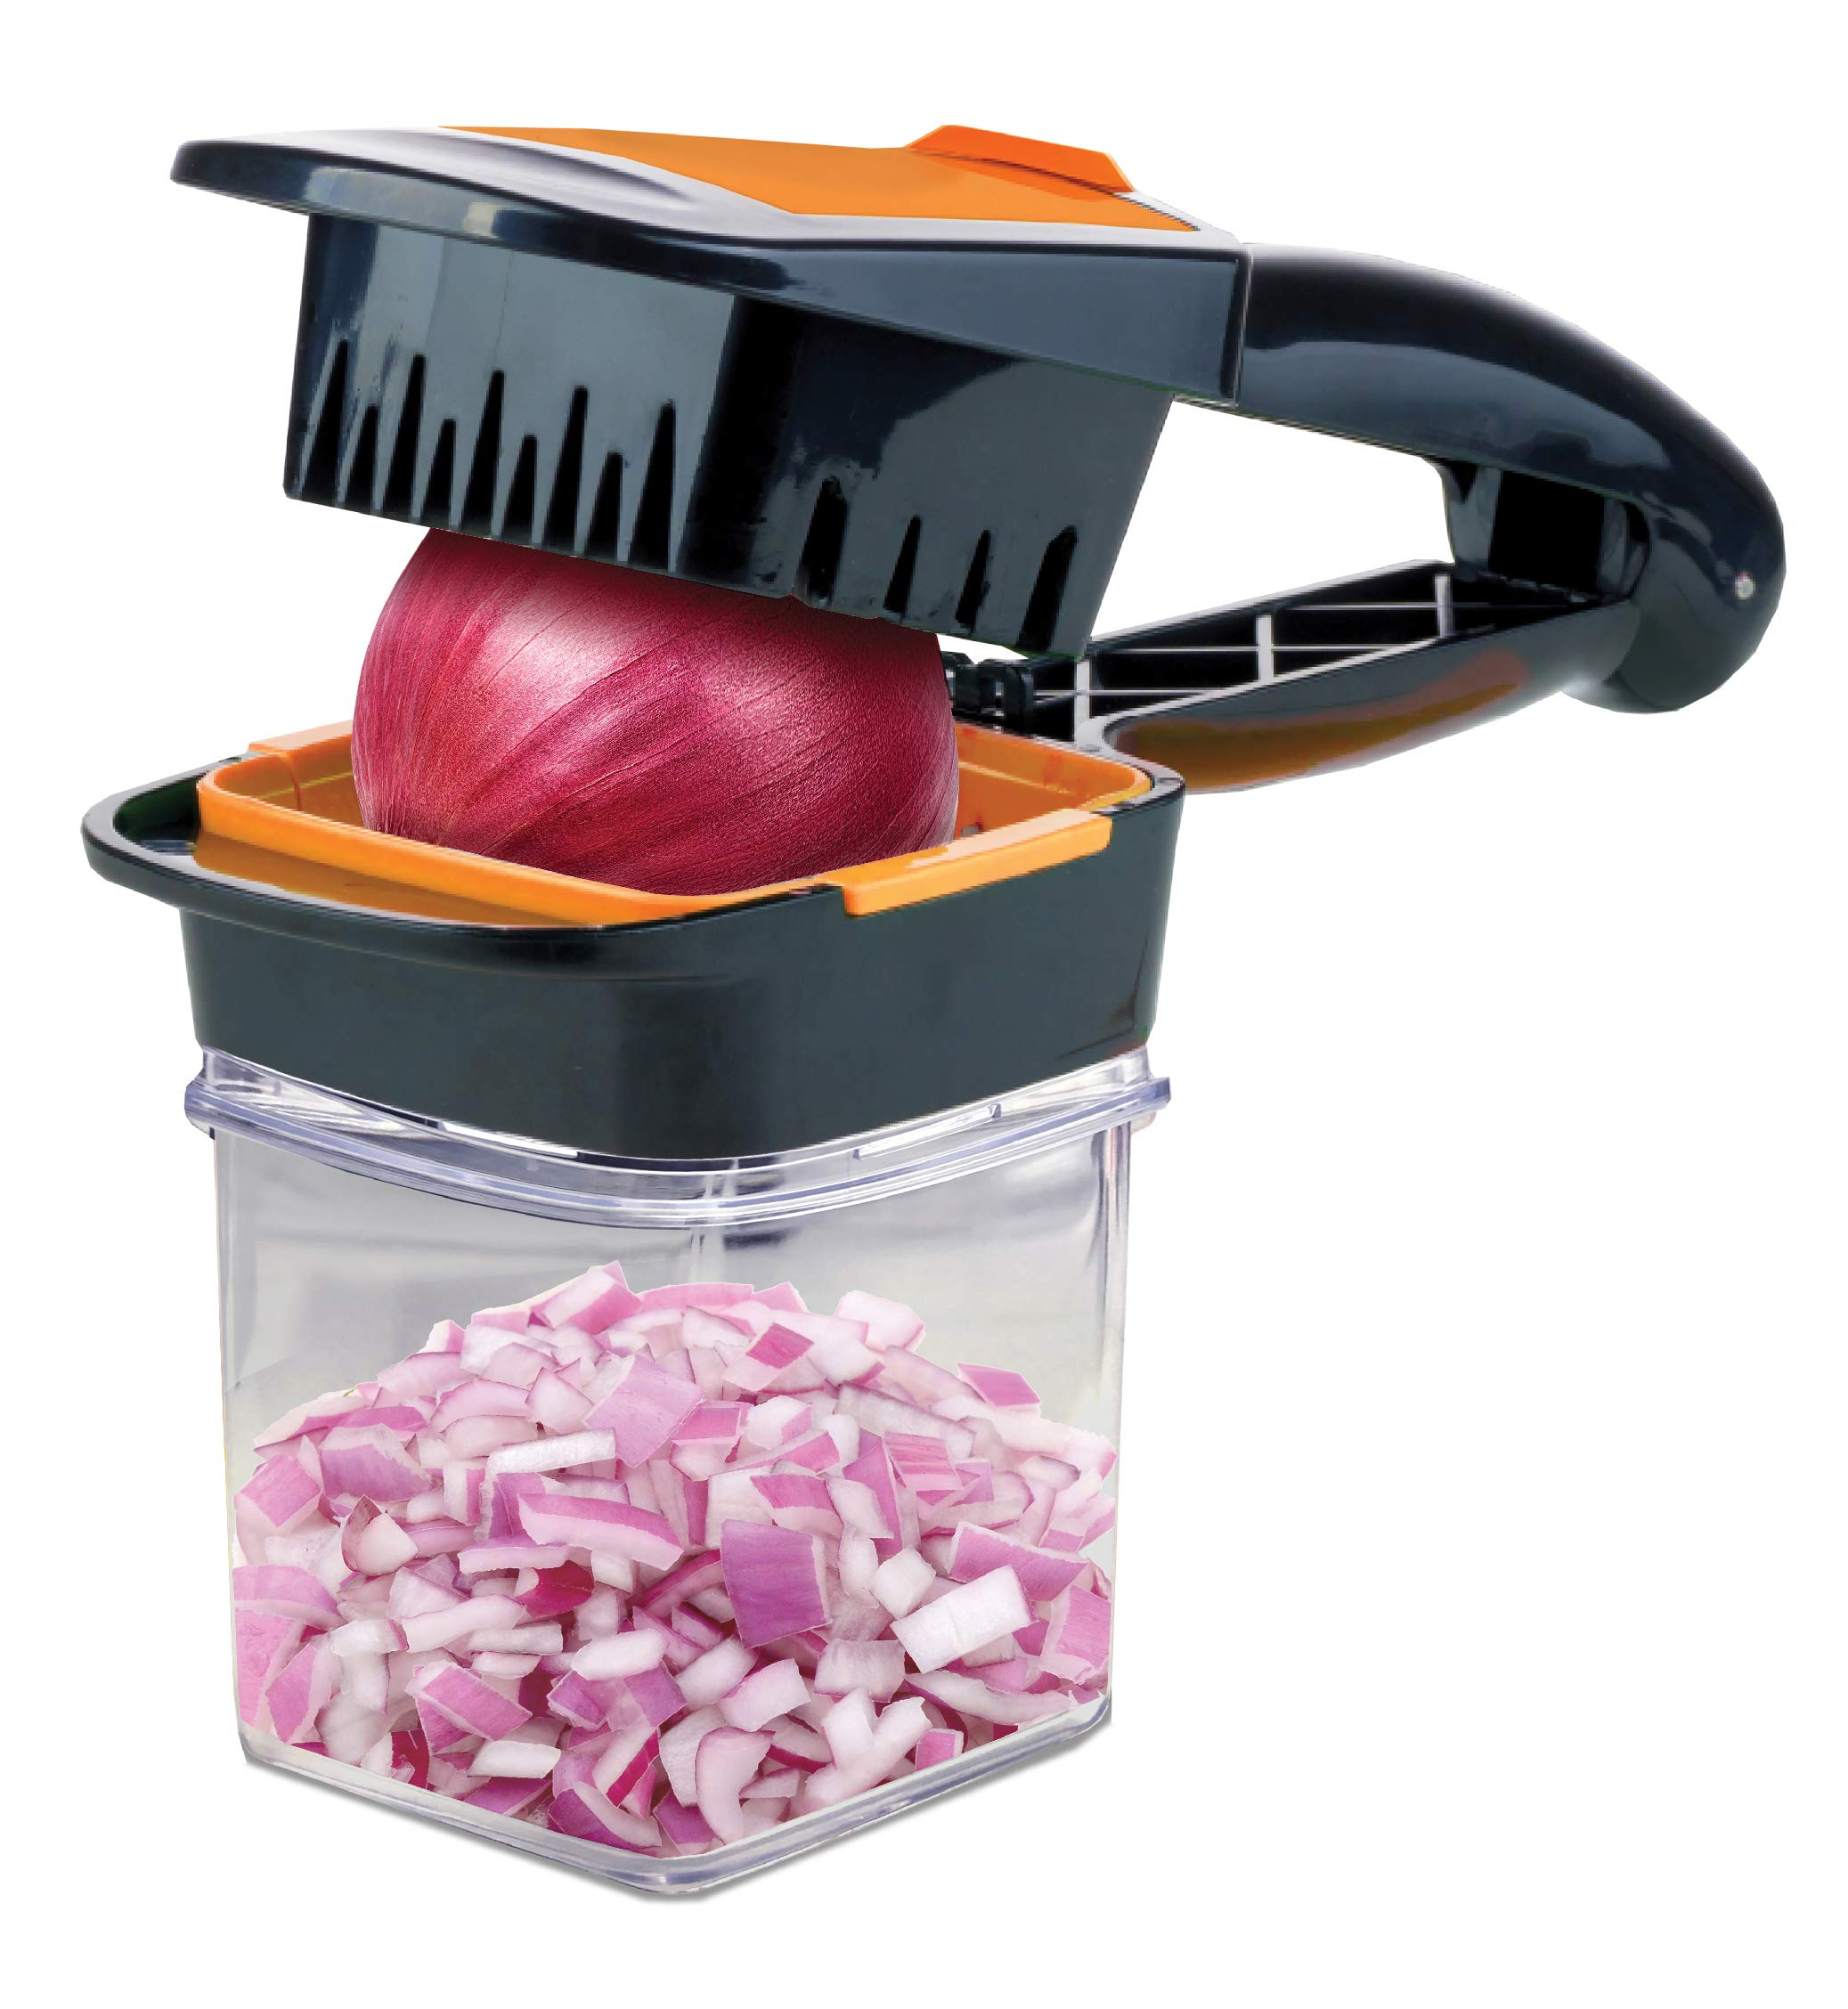 Nutrichopper with Fresh-keeping container - Chops, Slices, Cubes, Wedges - Multi-purpose Food Chopper with Stainless Steel Blades As Seen On TV by Nutrichopper